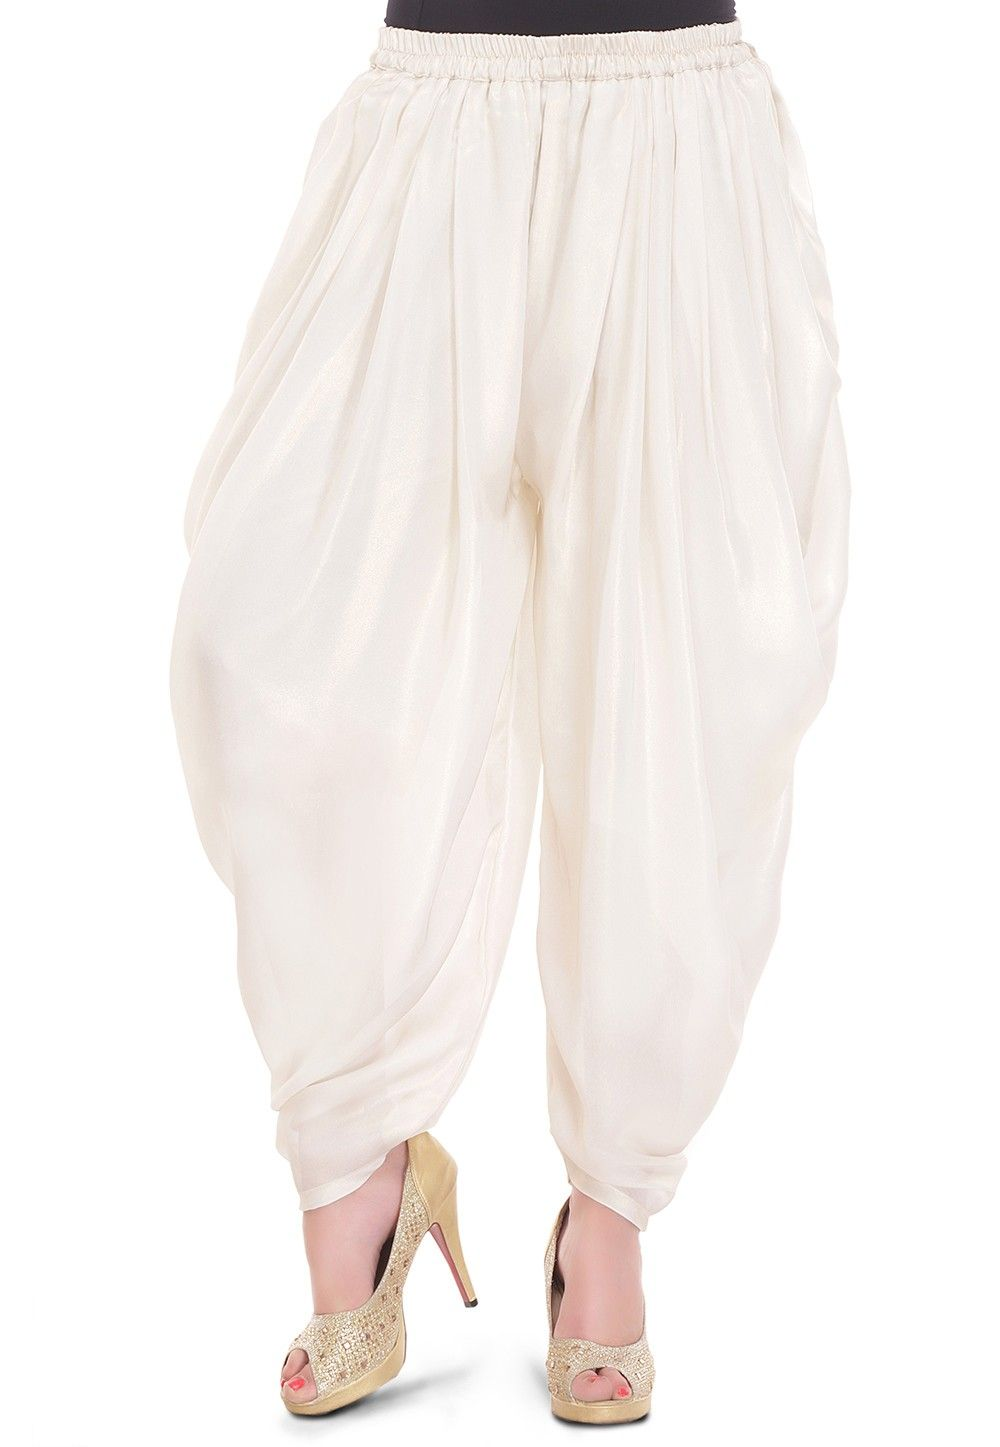 Plain Georgette Shimmer Elasticated Cowl Pant in Cream